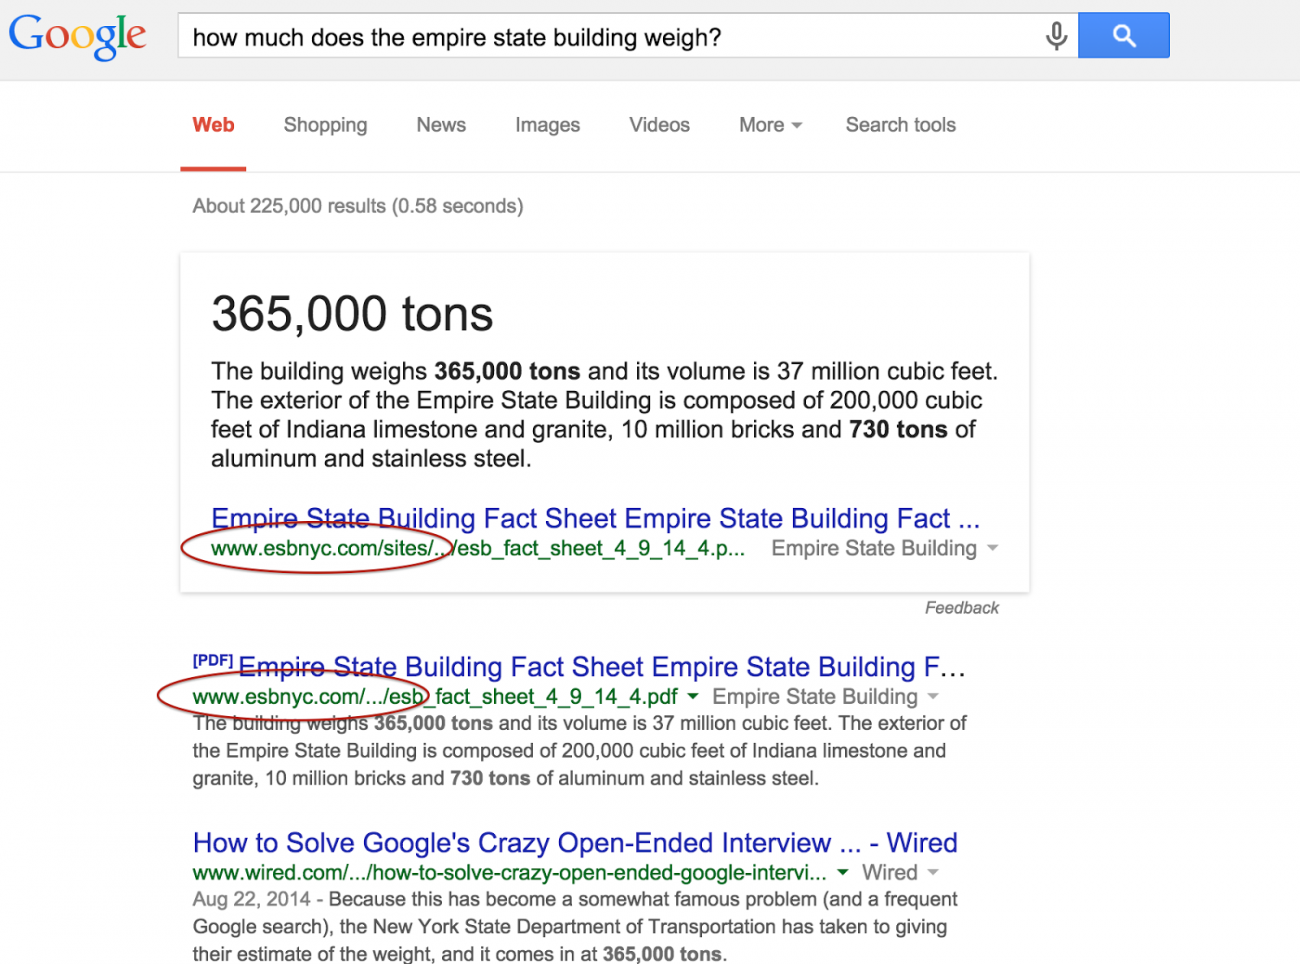 How much does the Empire State Building Weigh? - 365,000 tons